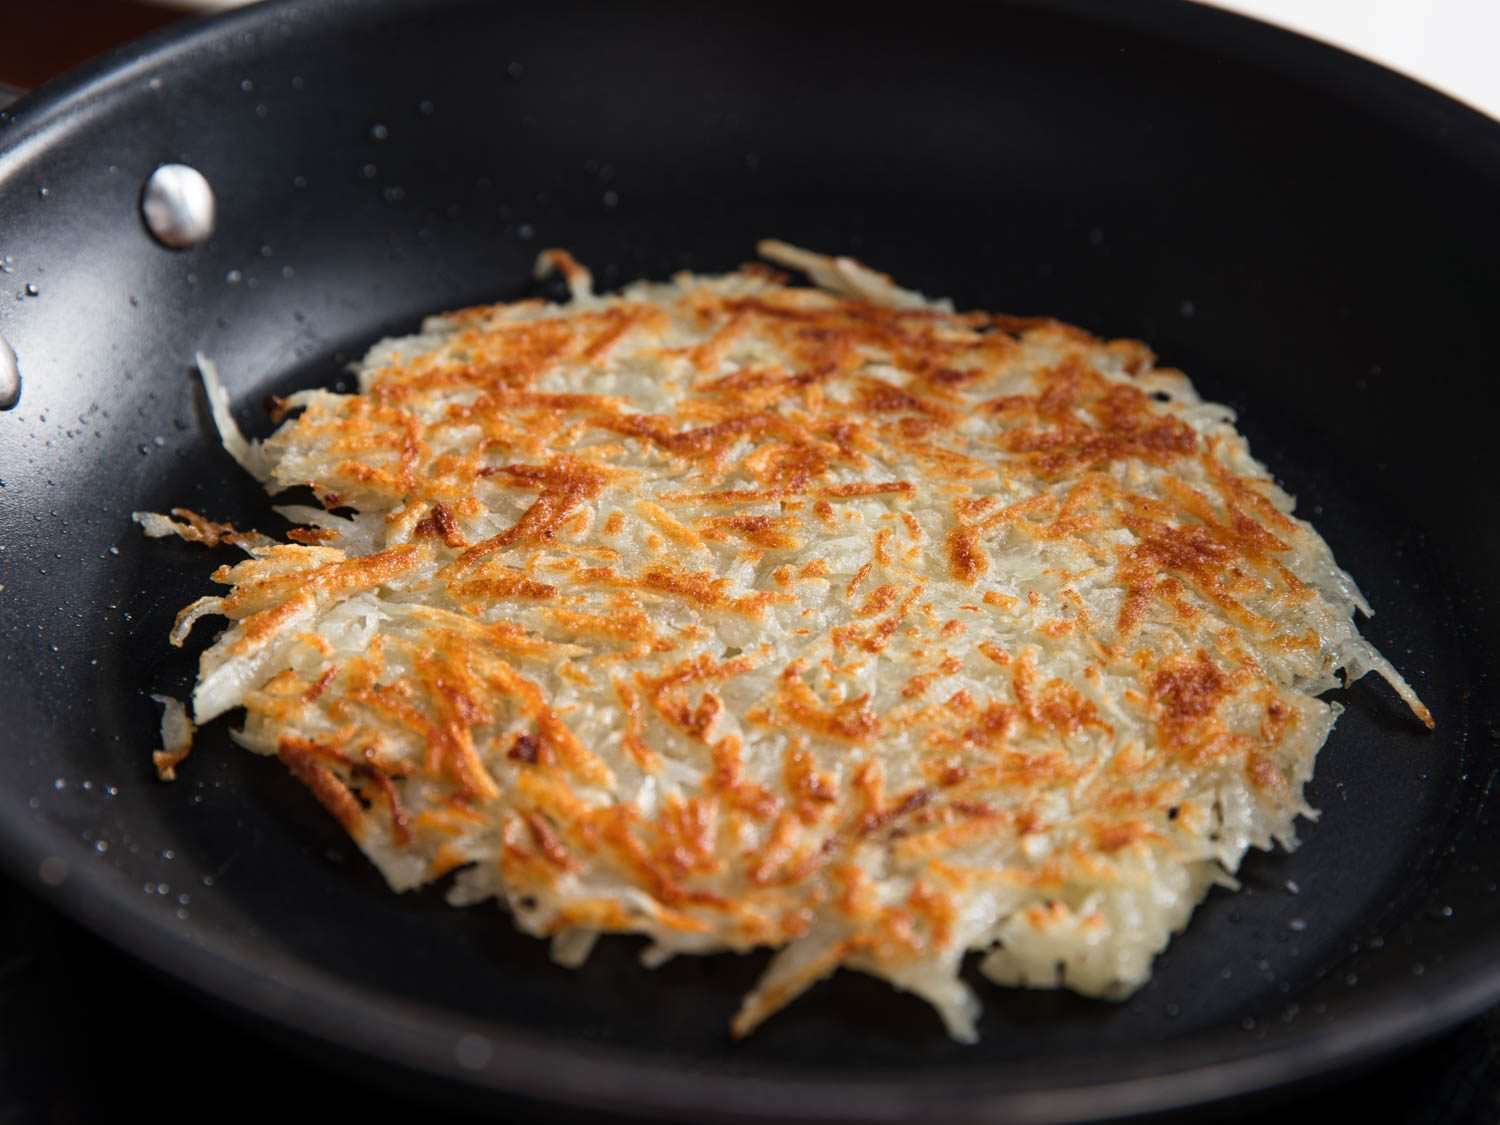 A golden disk of hash browns in a skillet